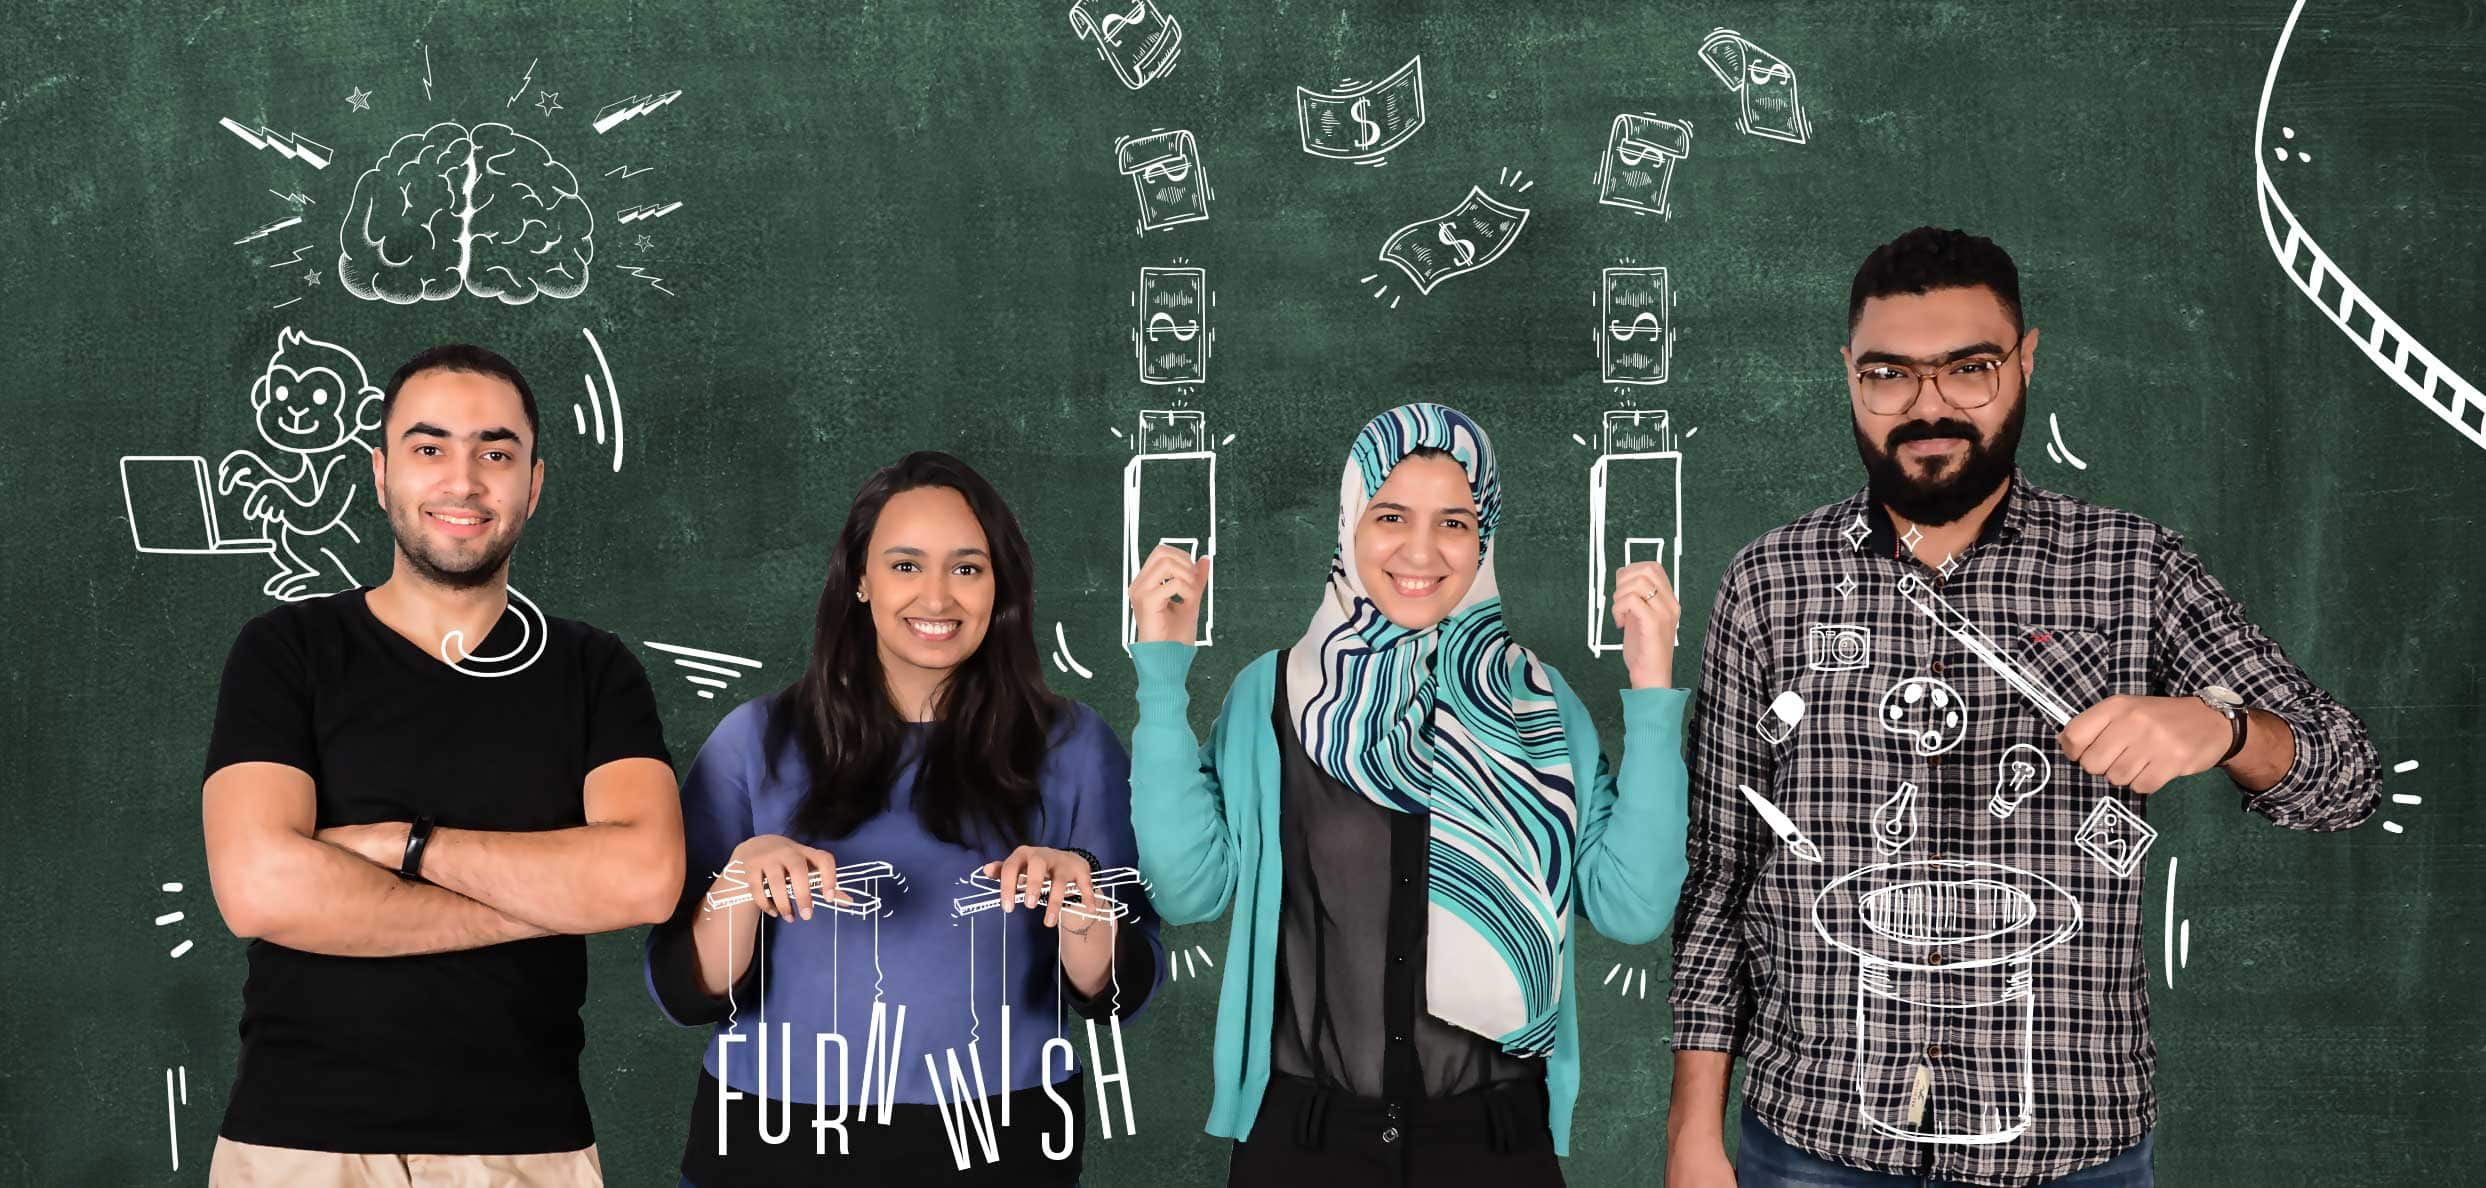 Founders of Furnwish